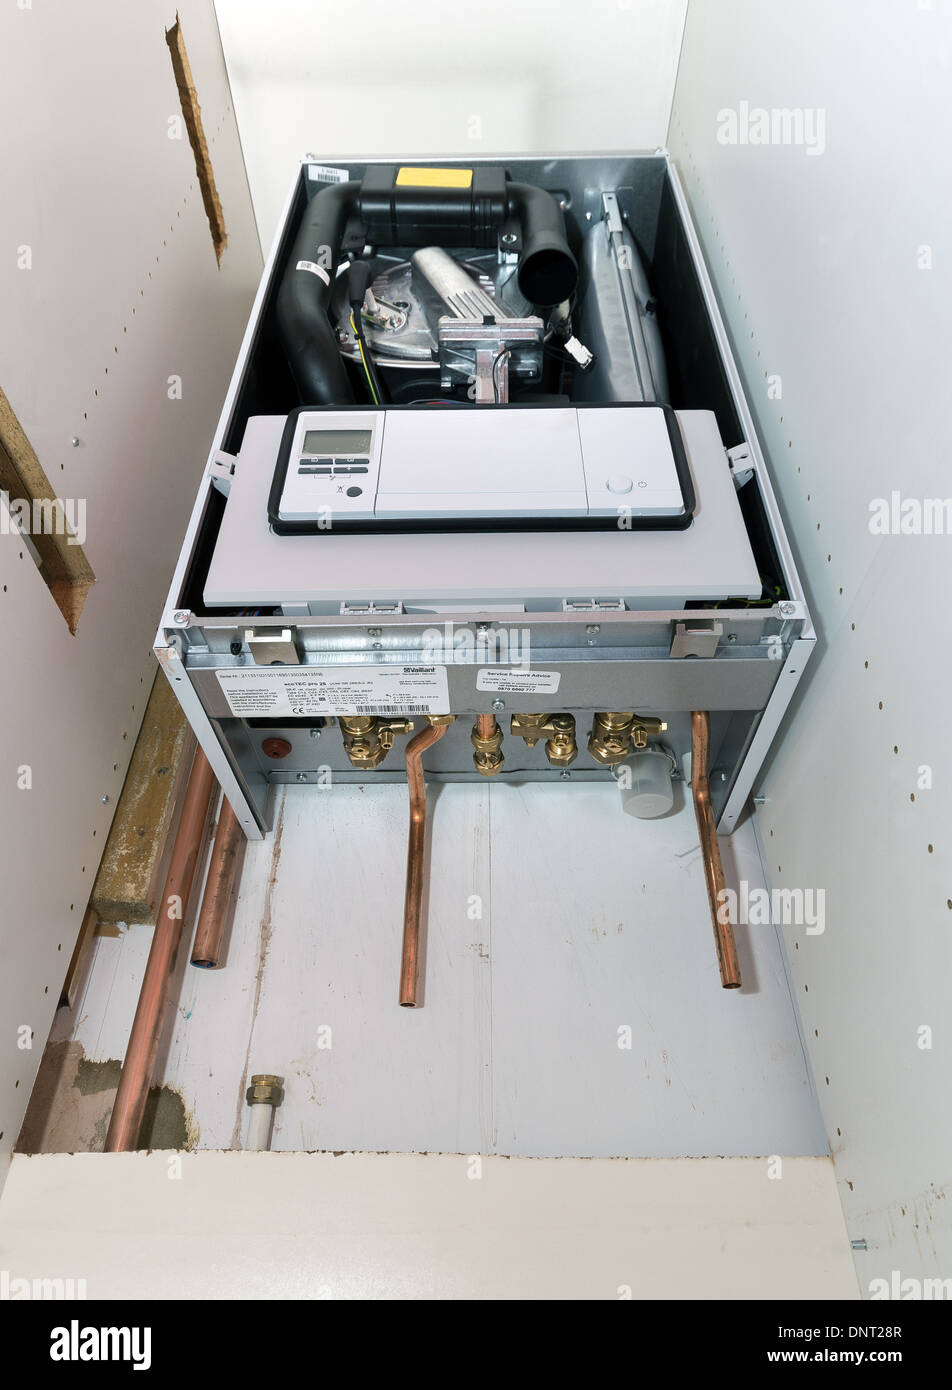 The installation of a vaillant ecotec pro combination